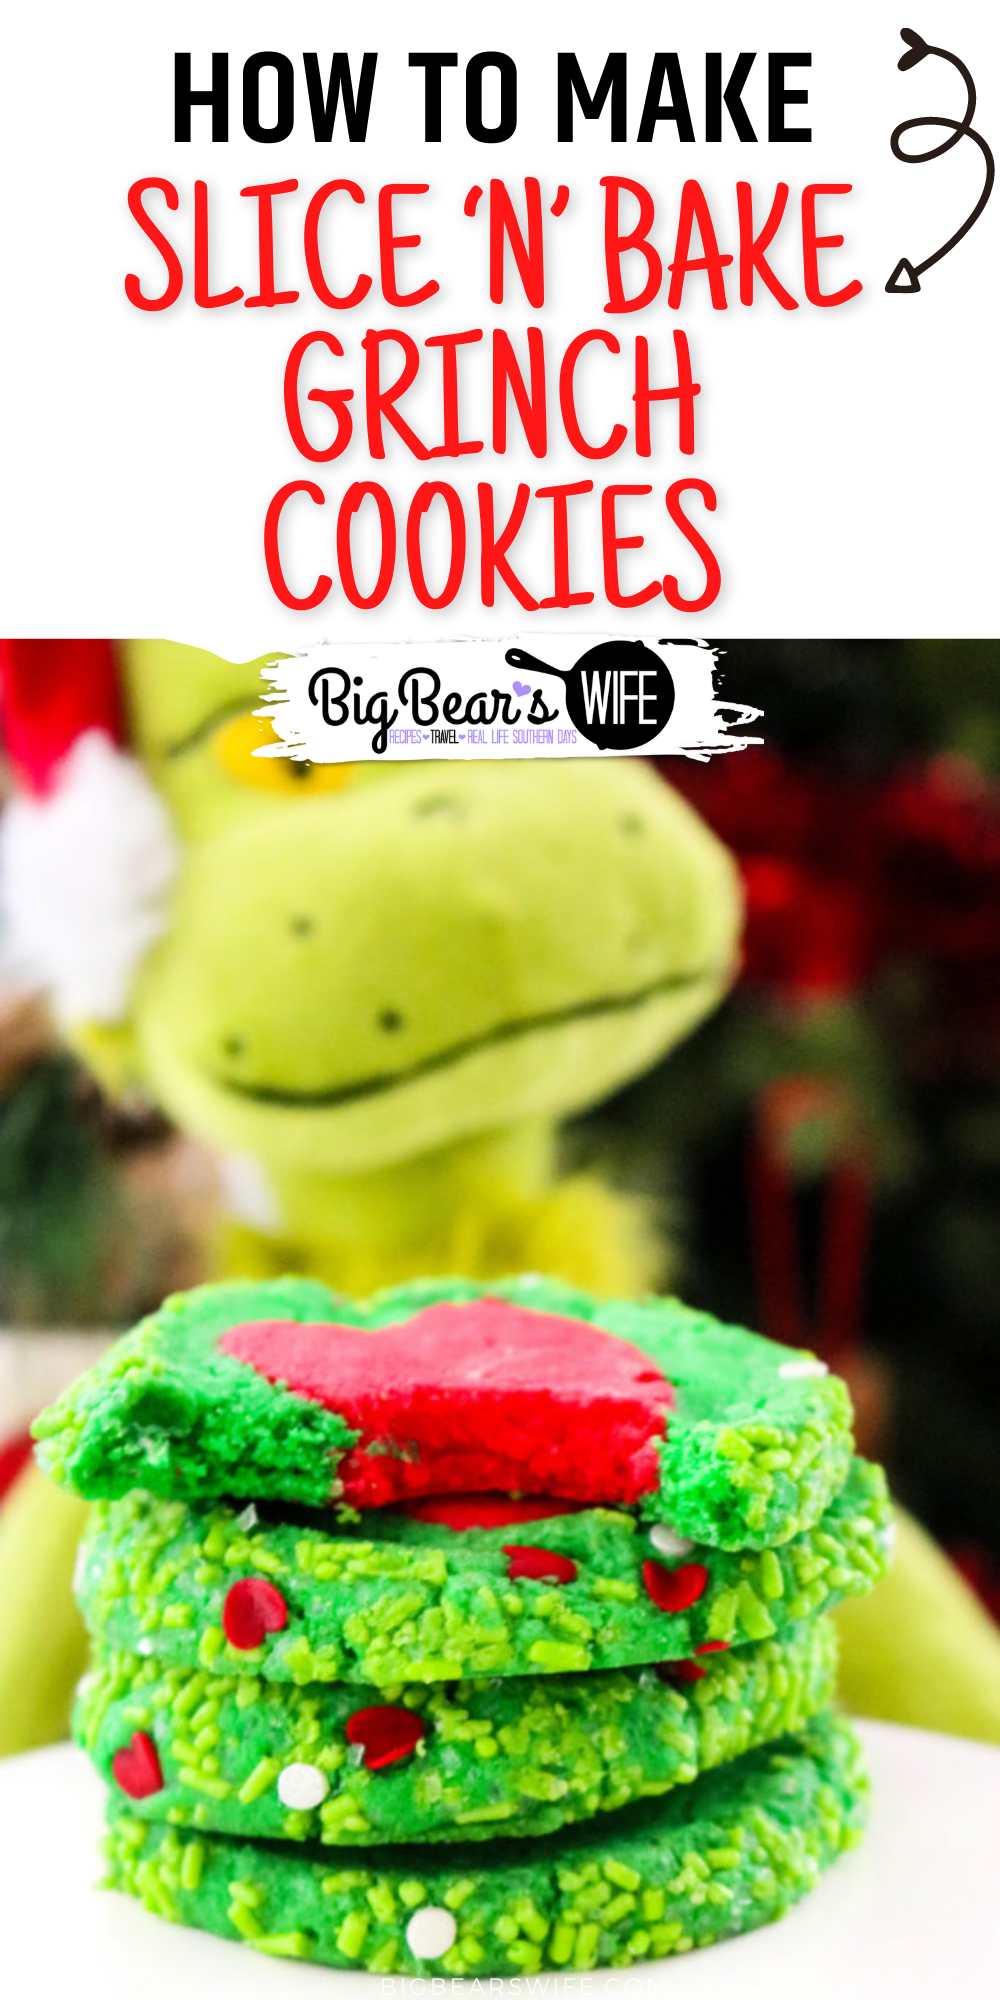 HomemadeSlice 'N' Bake Grinch Cookies are perfect for Christmas and might even make a sweet surprise for Santa! via @bigbearswife